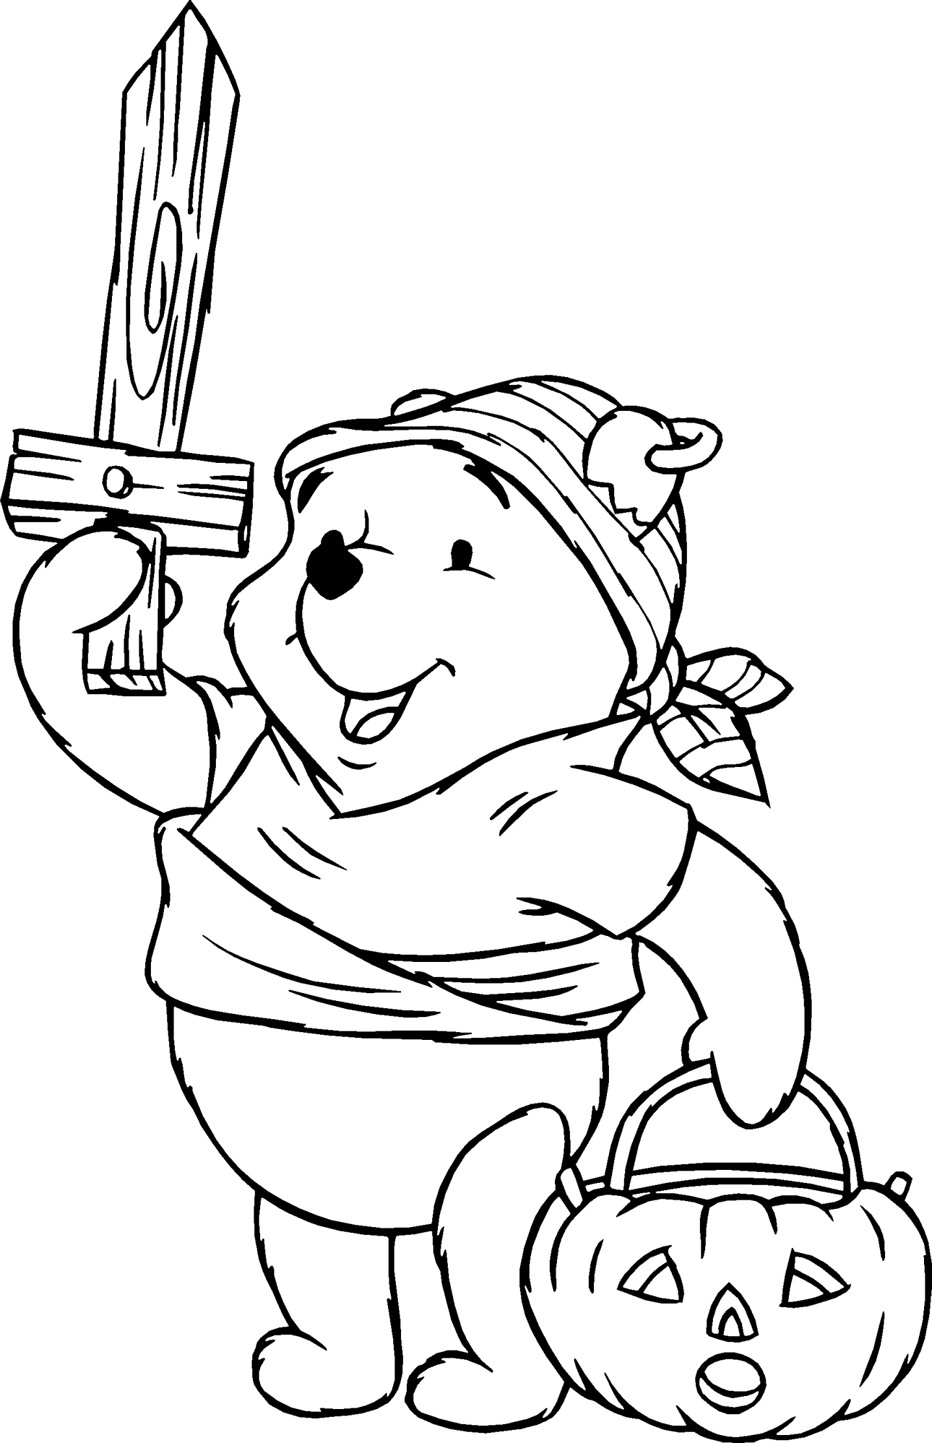 Free Printable Winnie The Pooh Coloring Pages For Kids Free Winnie The Pooh Coloring Pages